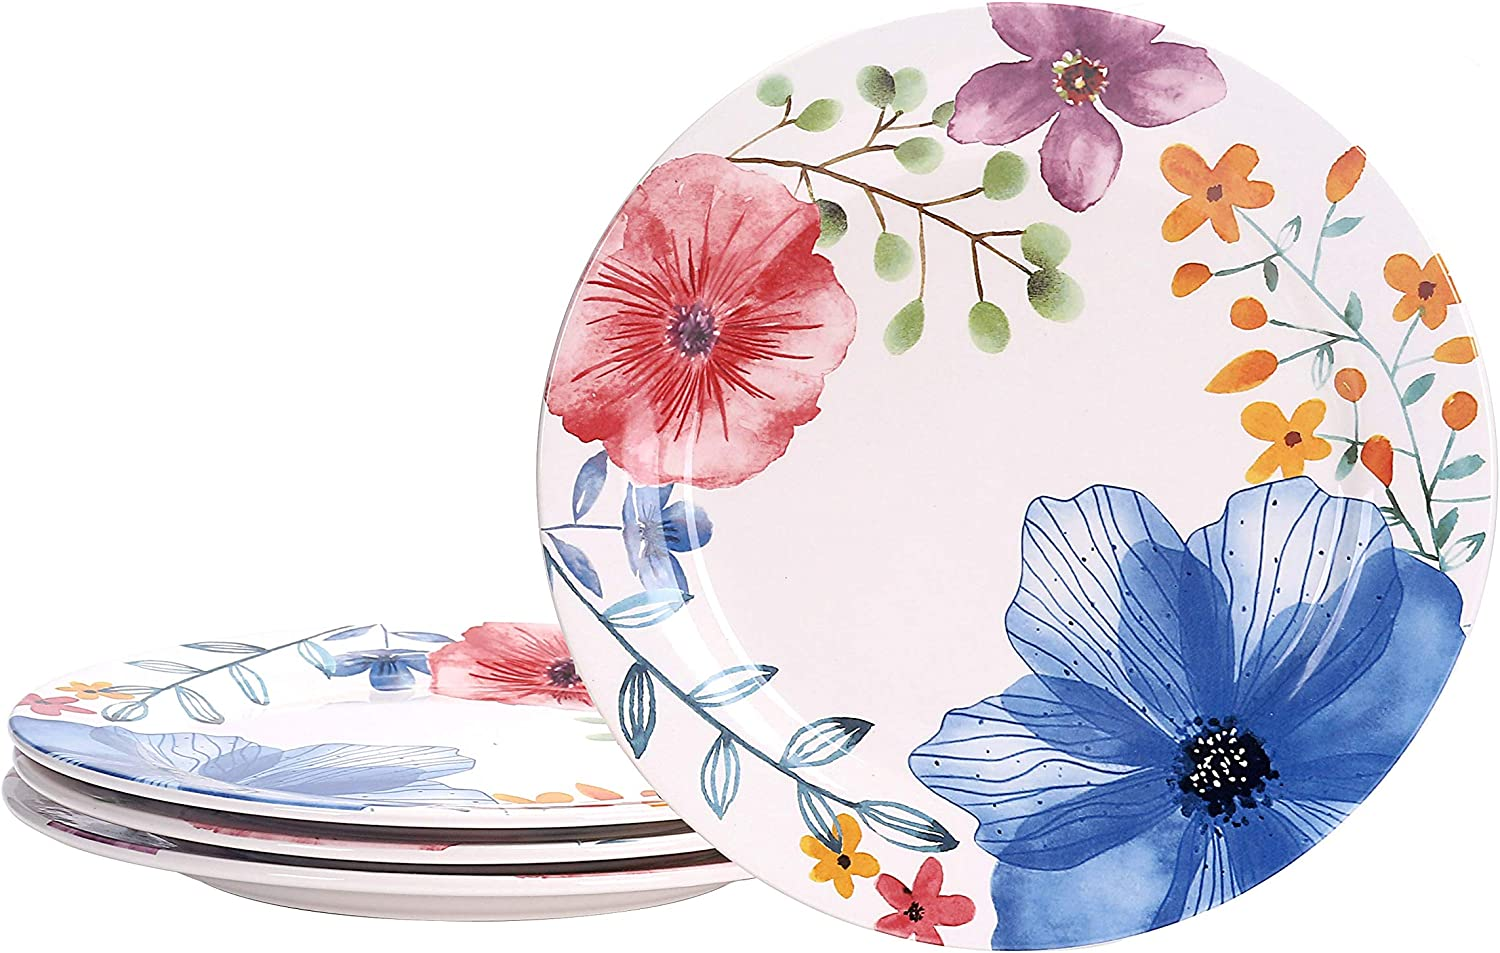 Bico Flower Carnival Ceramic 11 inch Dinner Plates, Set of 4, for Pasta, Salad, Maincourse, Microwave & Dishwasher Safe